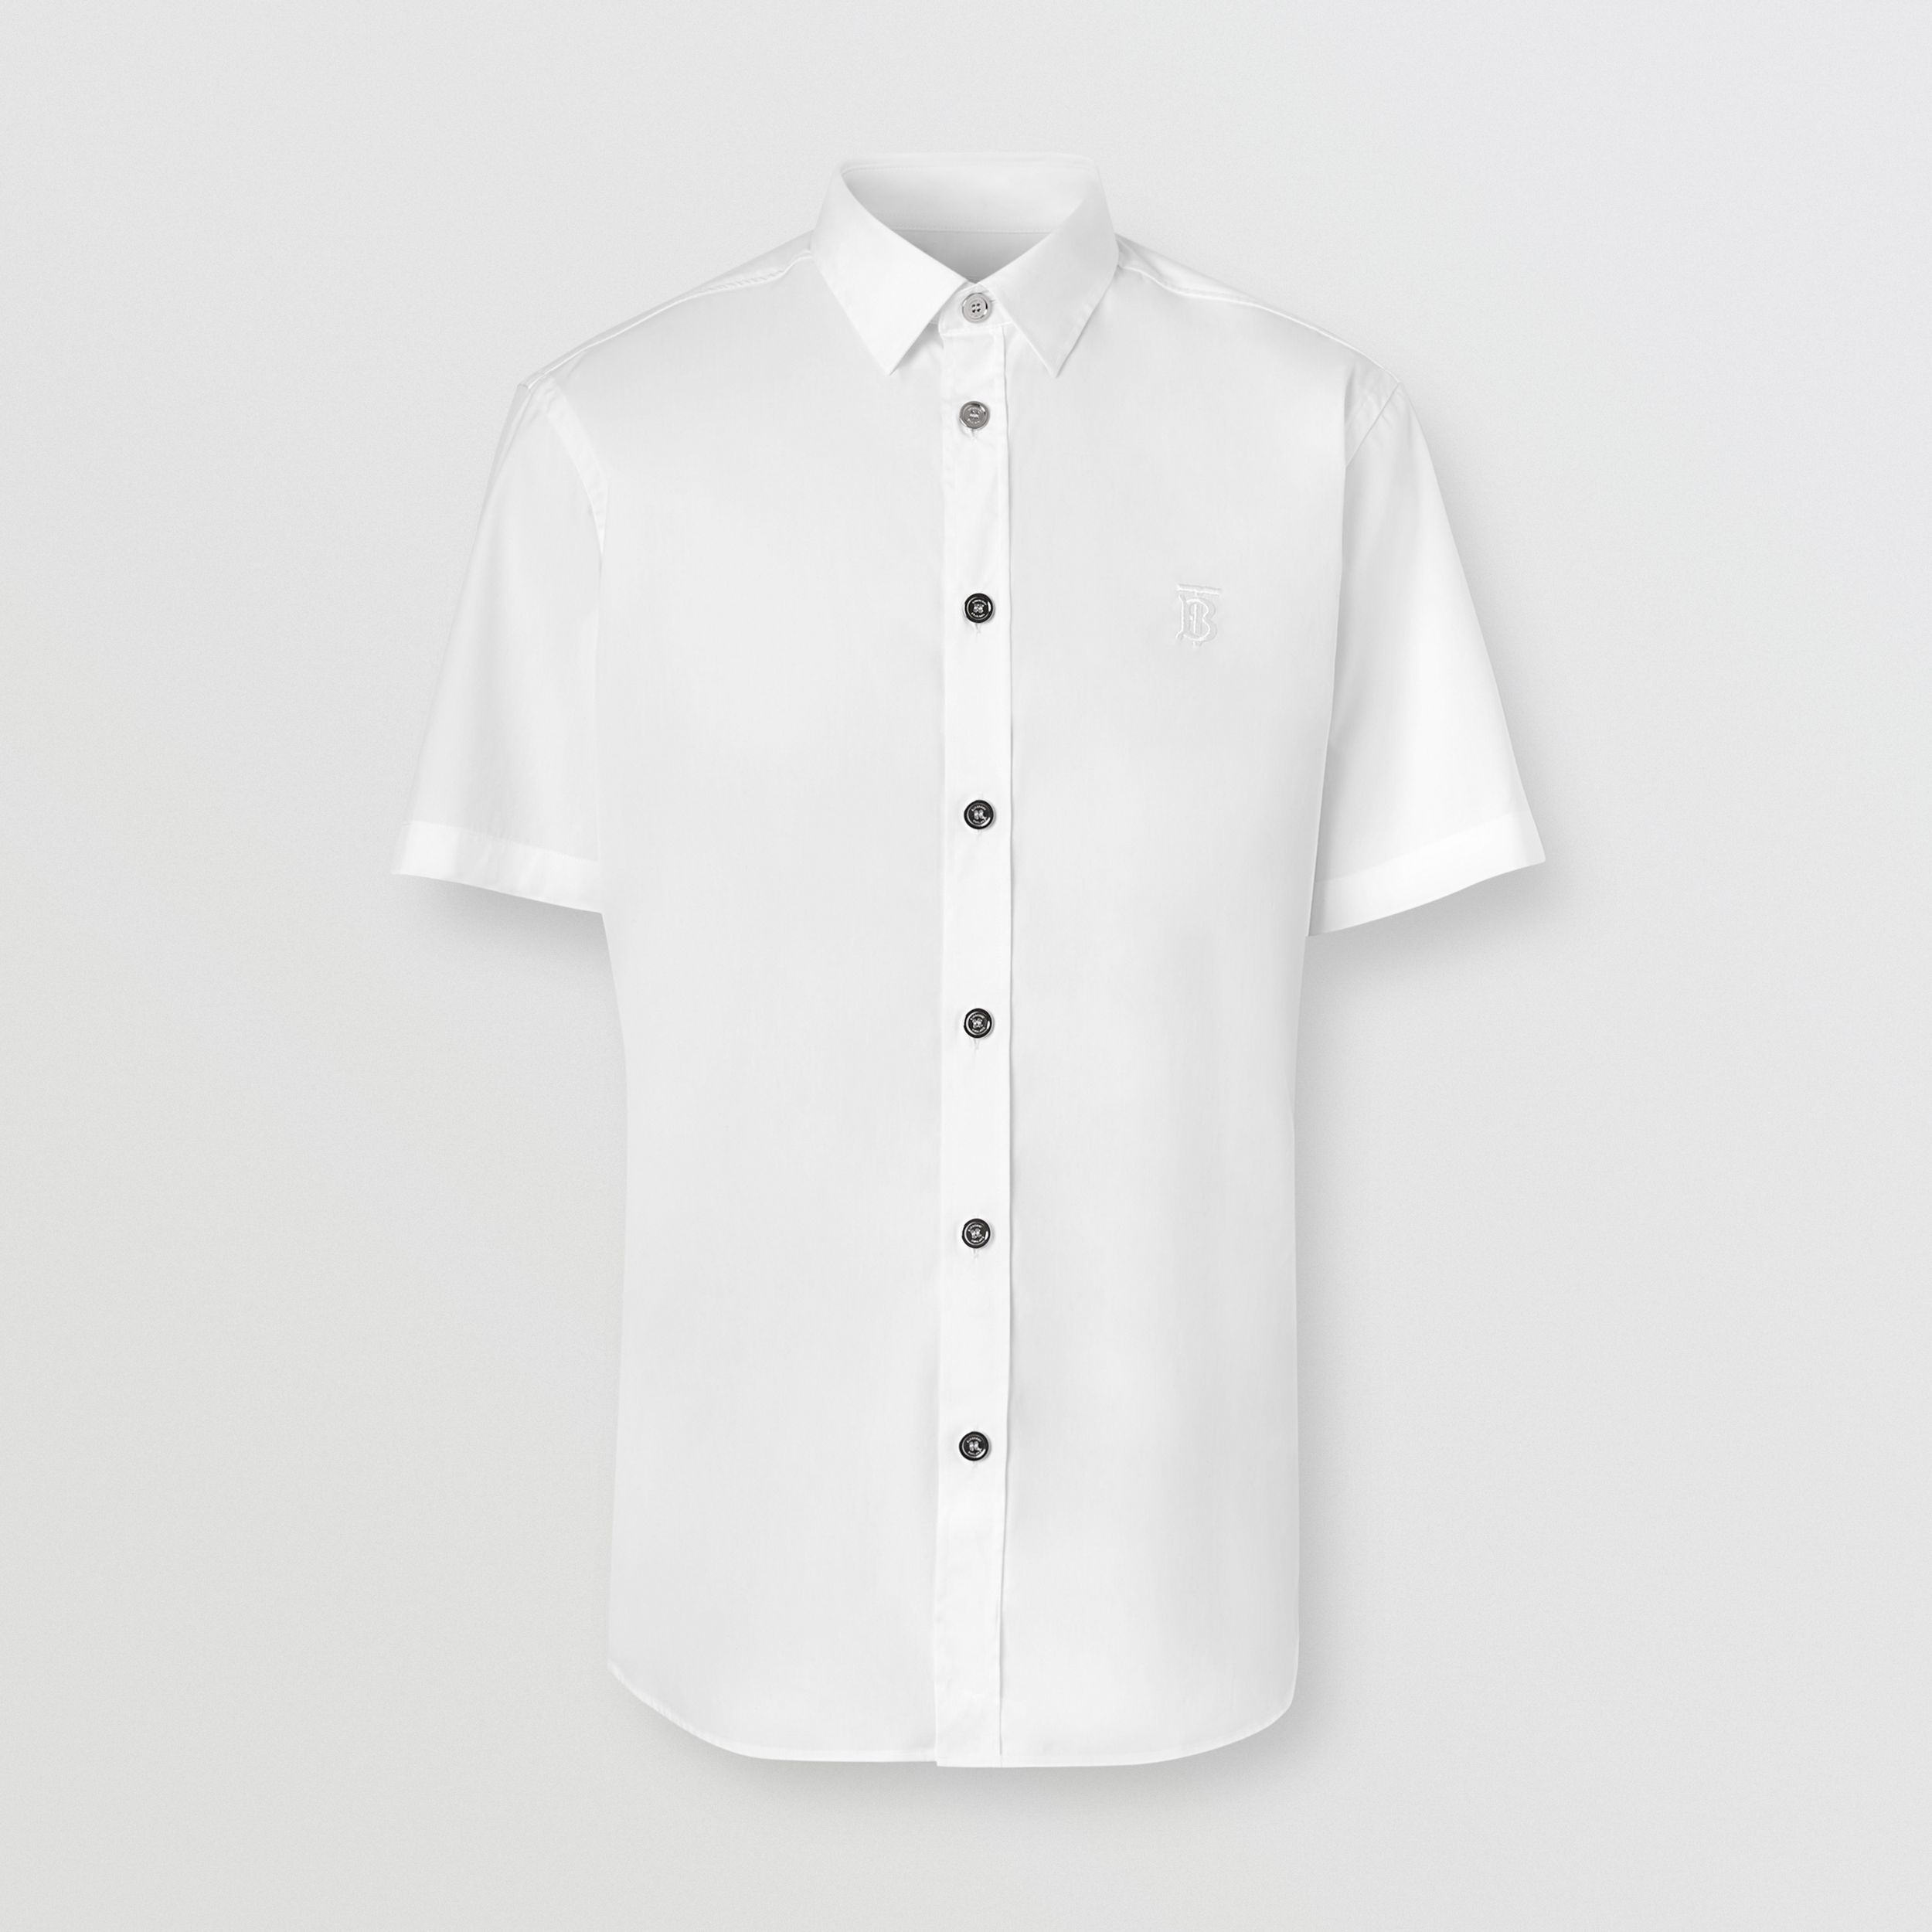 Short-sleeve Monogram Motif Stretch Cotton Shirt in White - Men | Burberry - 4